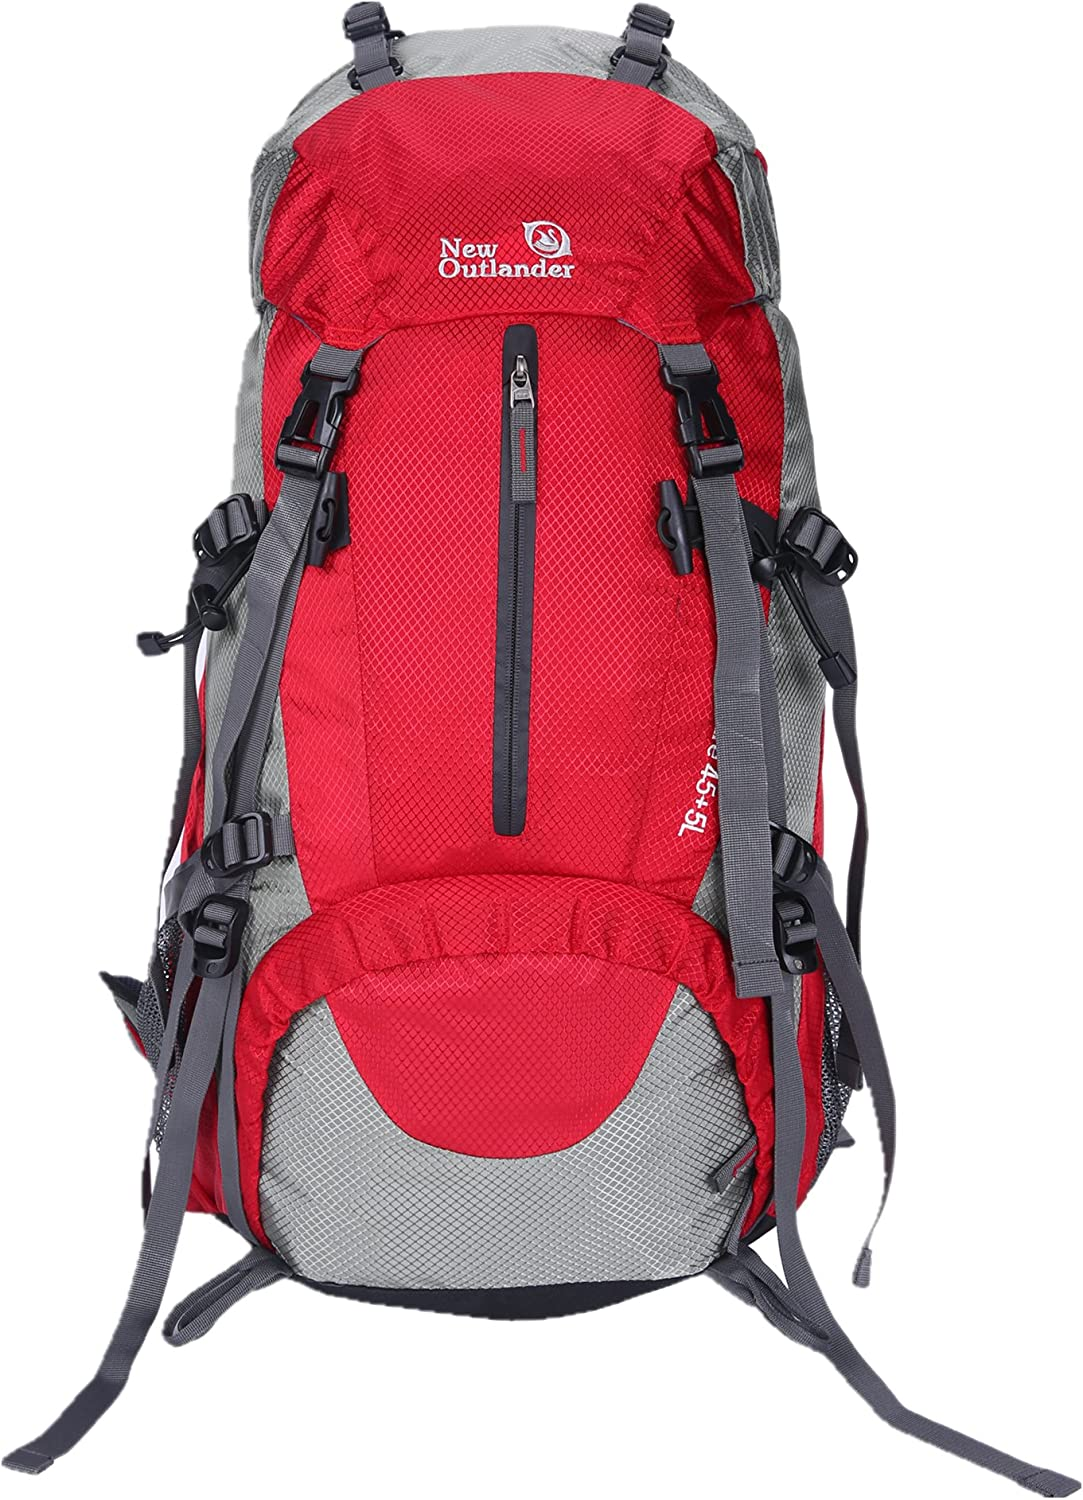 Unistrengh Hiking Backpack Max 47% Max 86% OFF OFF Nylon 50 Backpa Liter Water-resistant